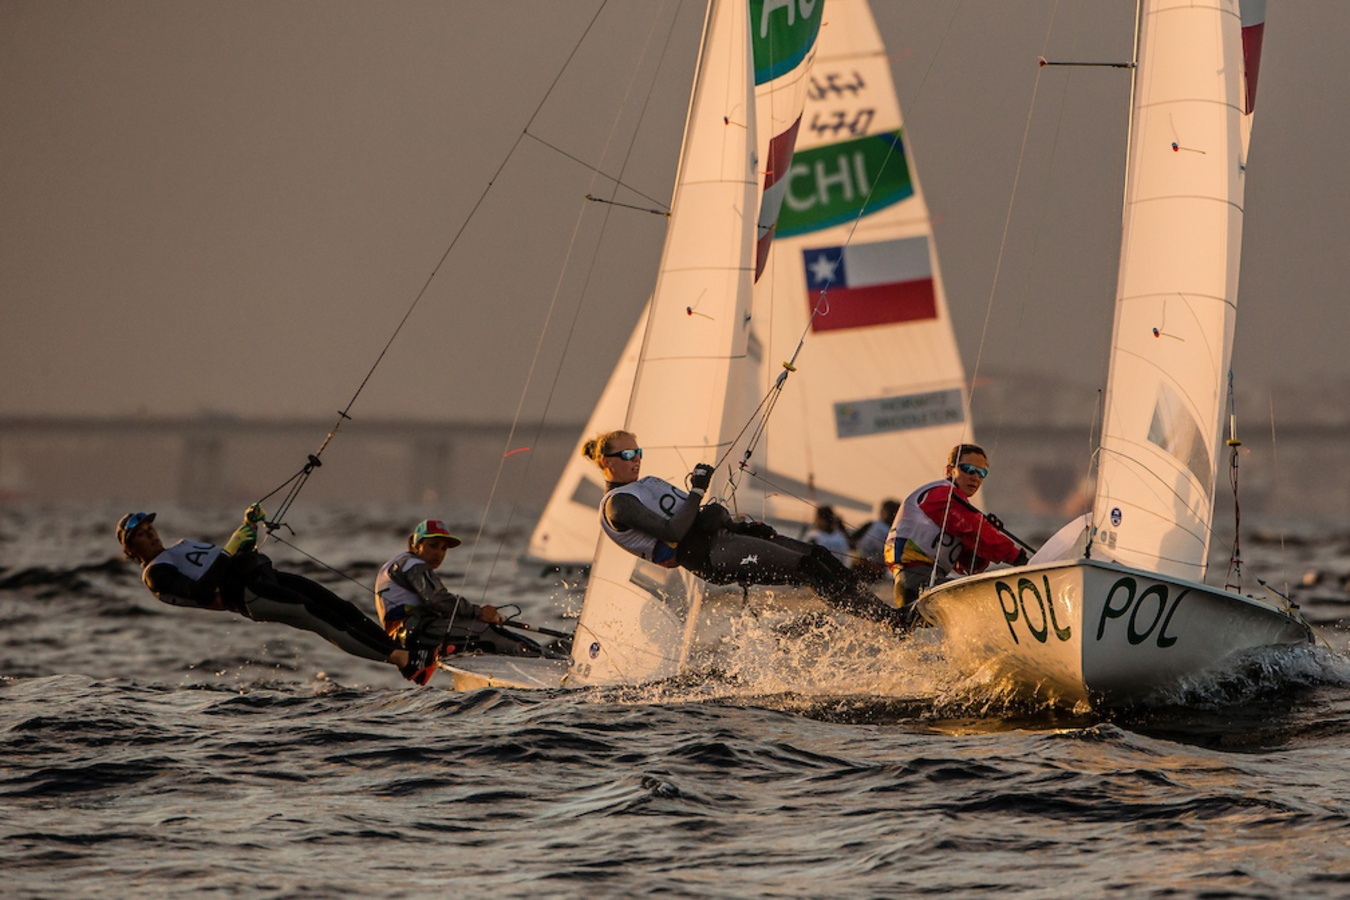 Preparation is everything in Olympic sailing